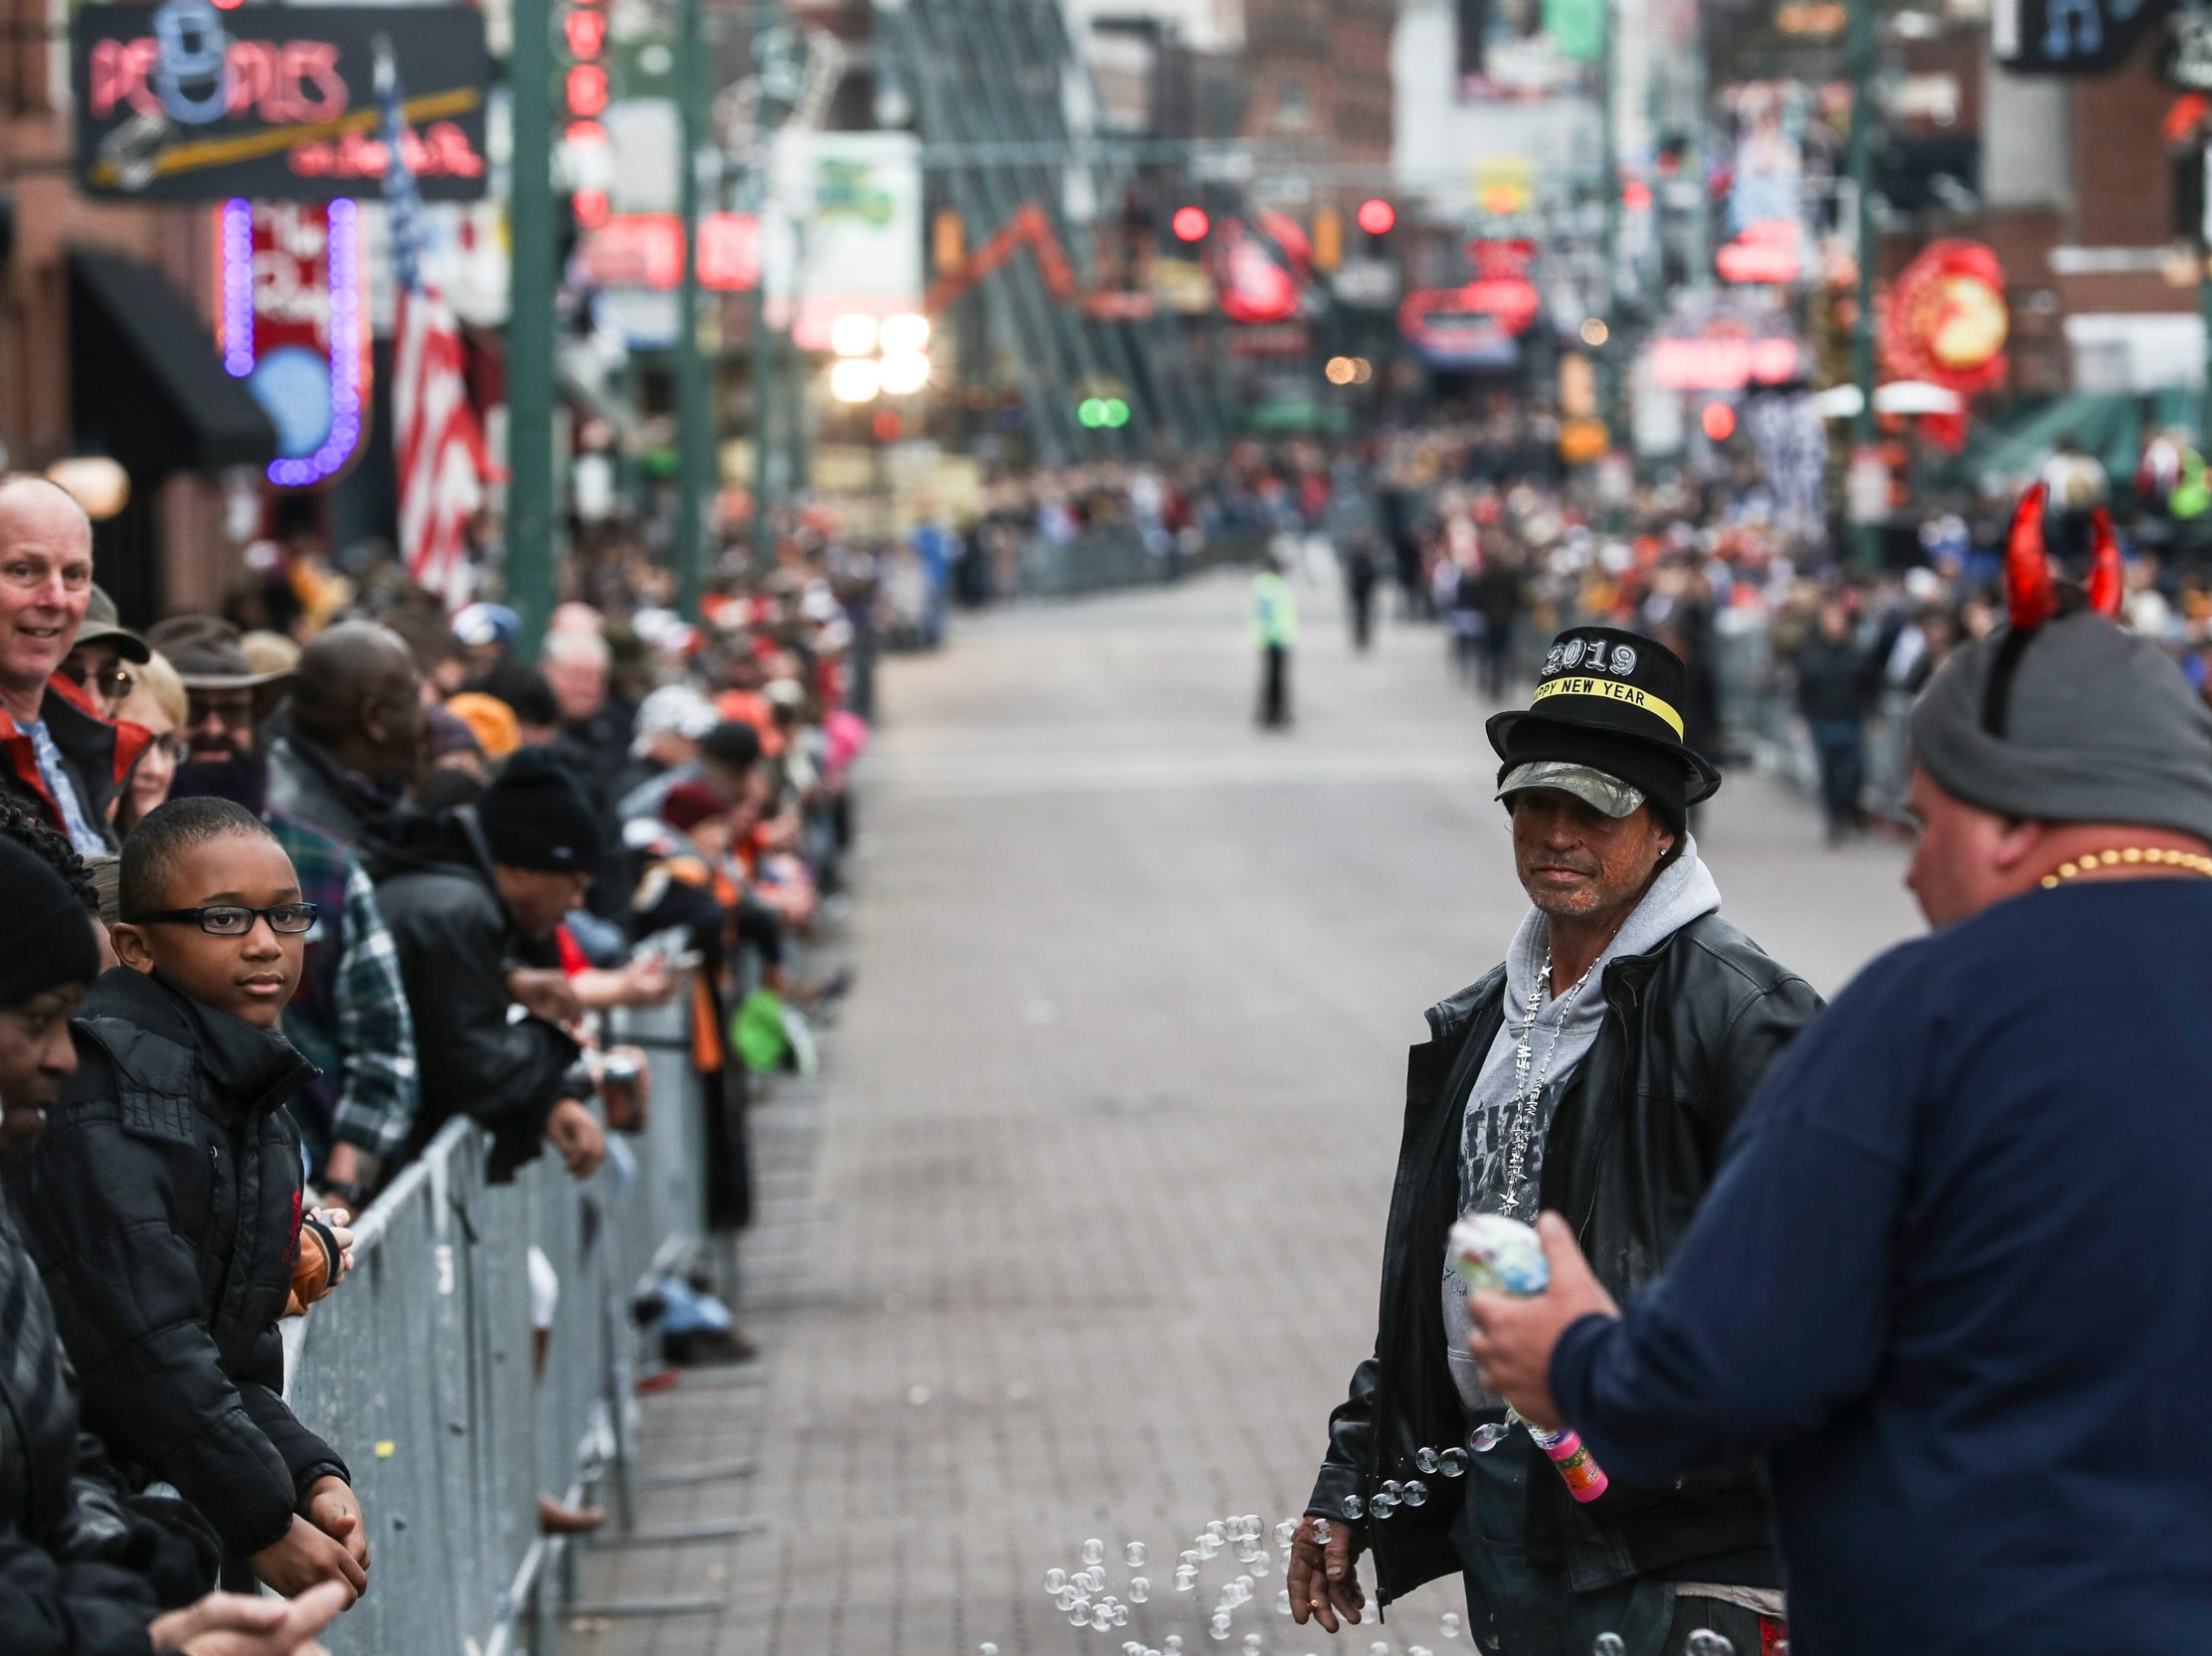 December 30 2018 - Scenes from the Annual Liberty Bowl Parade & Pep Rally on Sunday. On Monday the Oklahoma State Cowboys and Missouri Tigers play in the 2018 AutoZone Liberty Bowl.